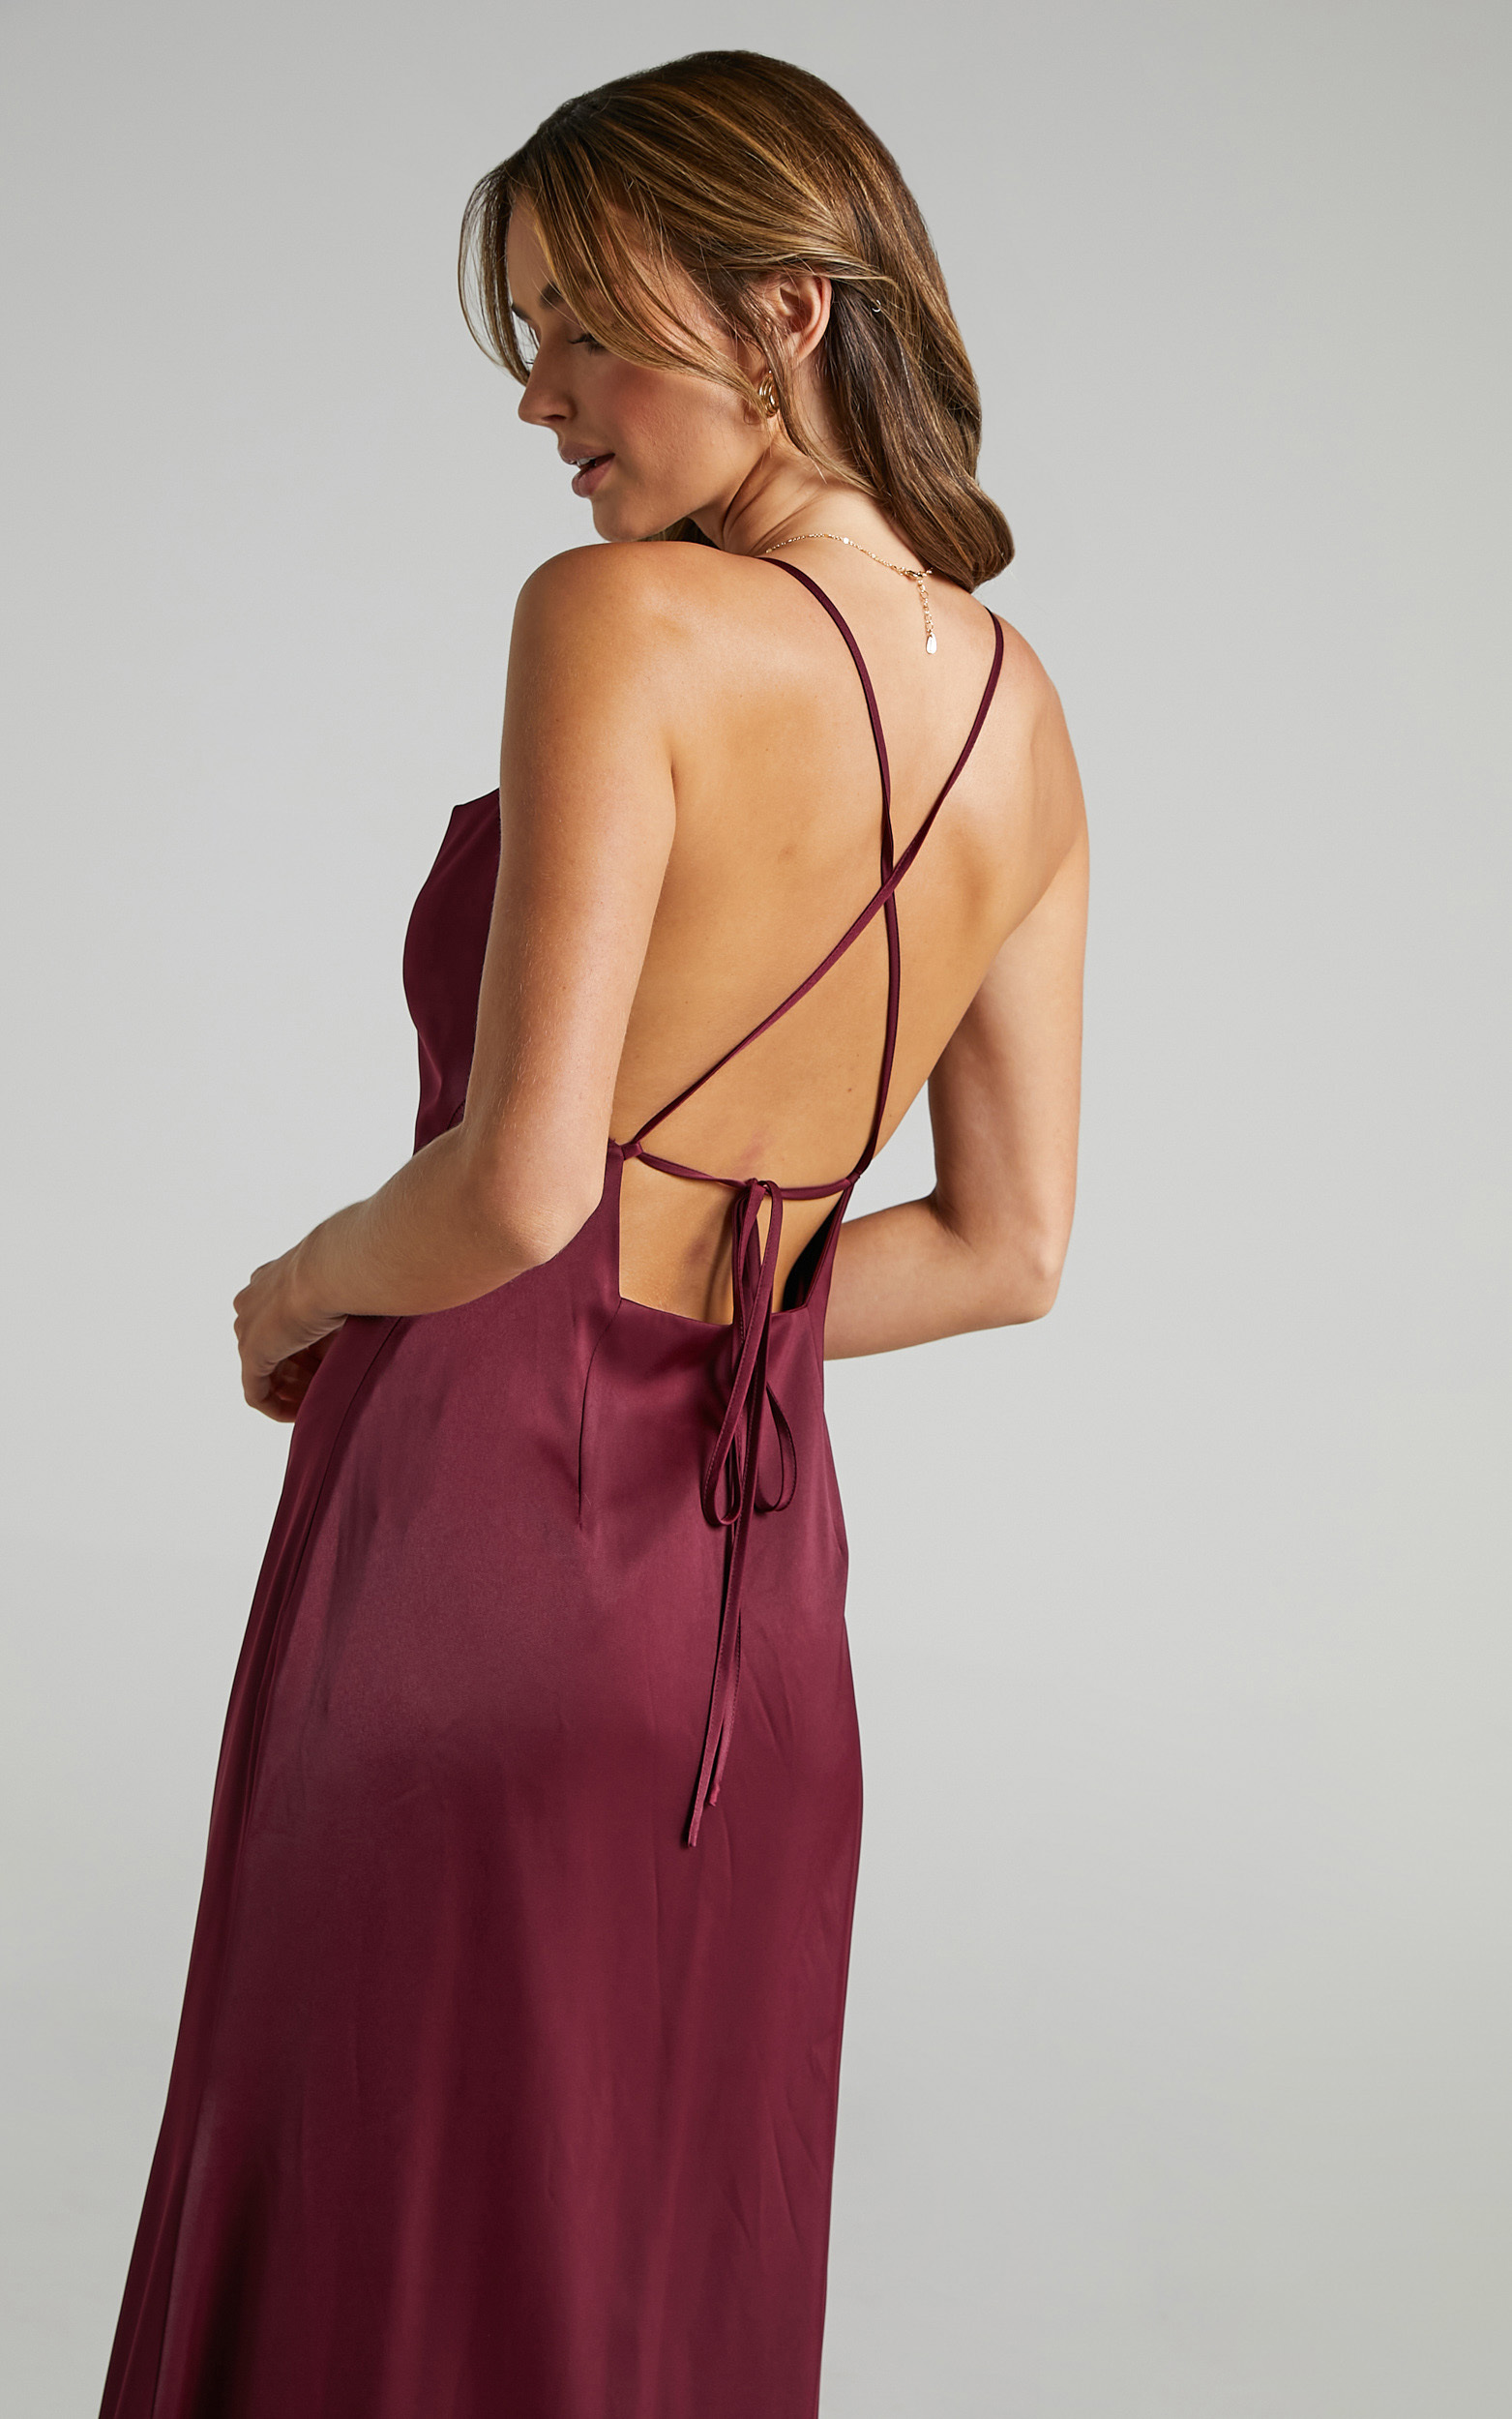 A Final Toast Dress in Mulberry Satin - 06, PRP3, hi-res image number null